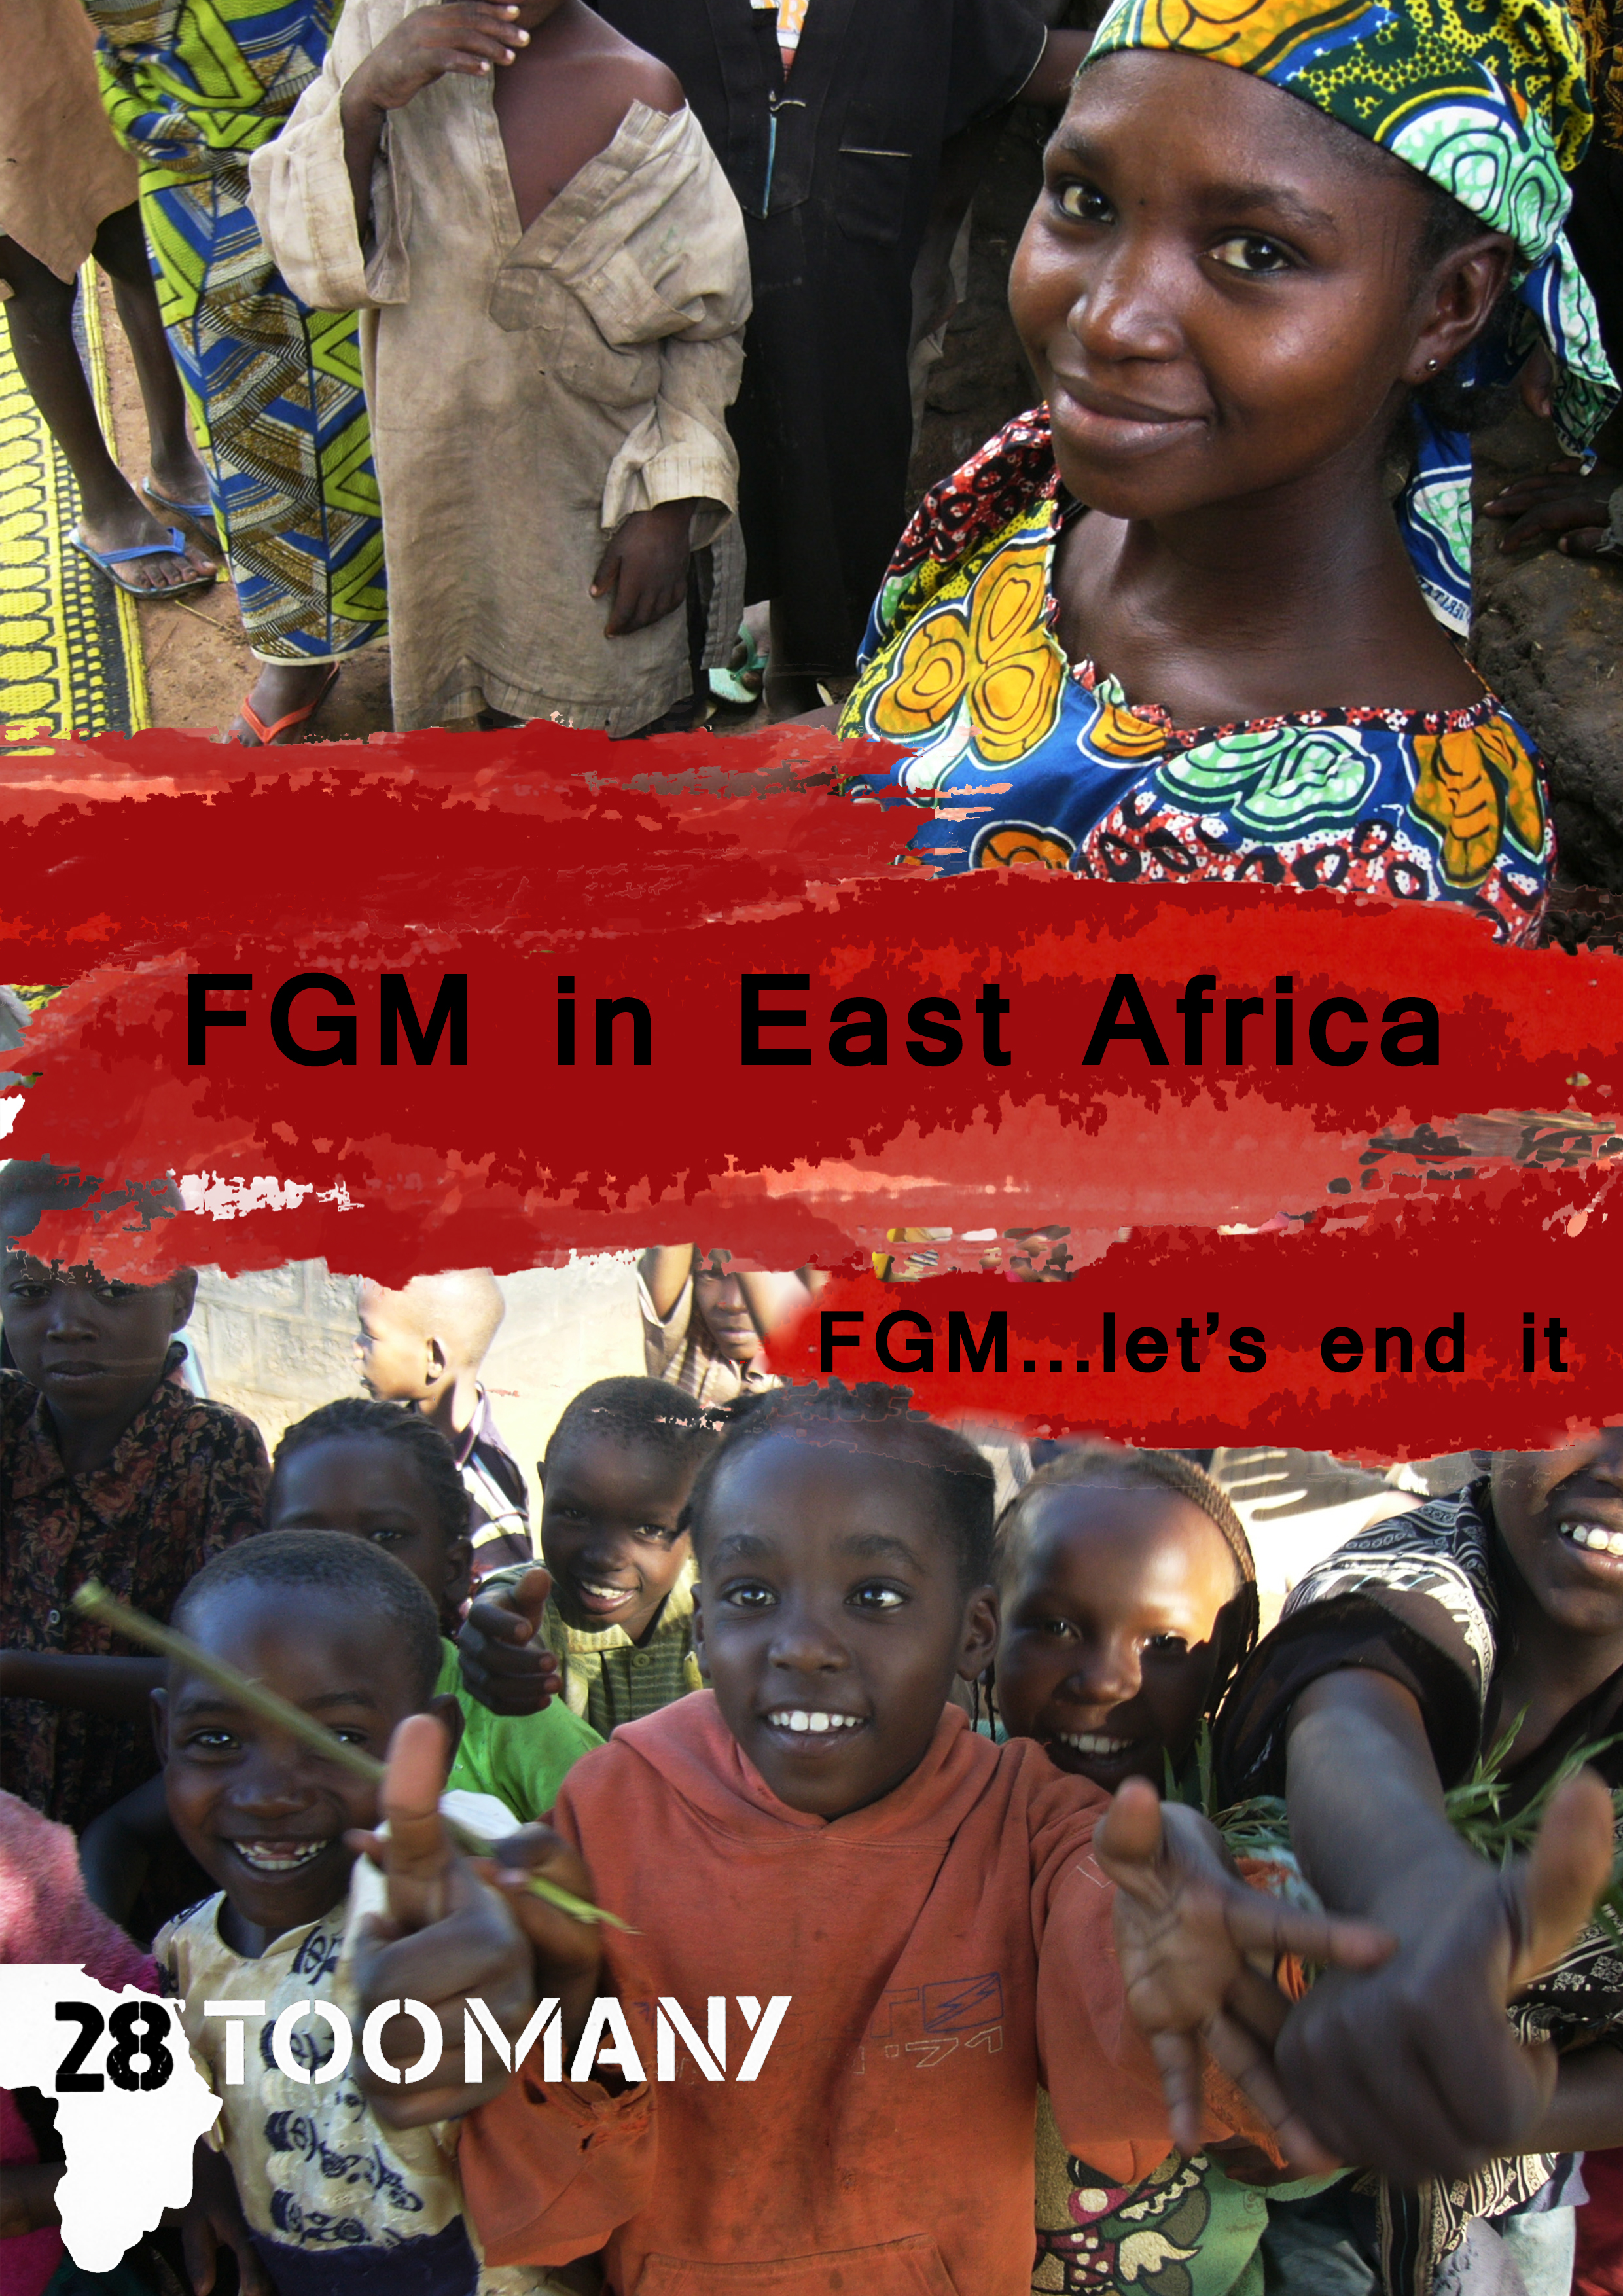 FGM in East Africa